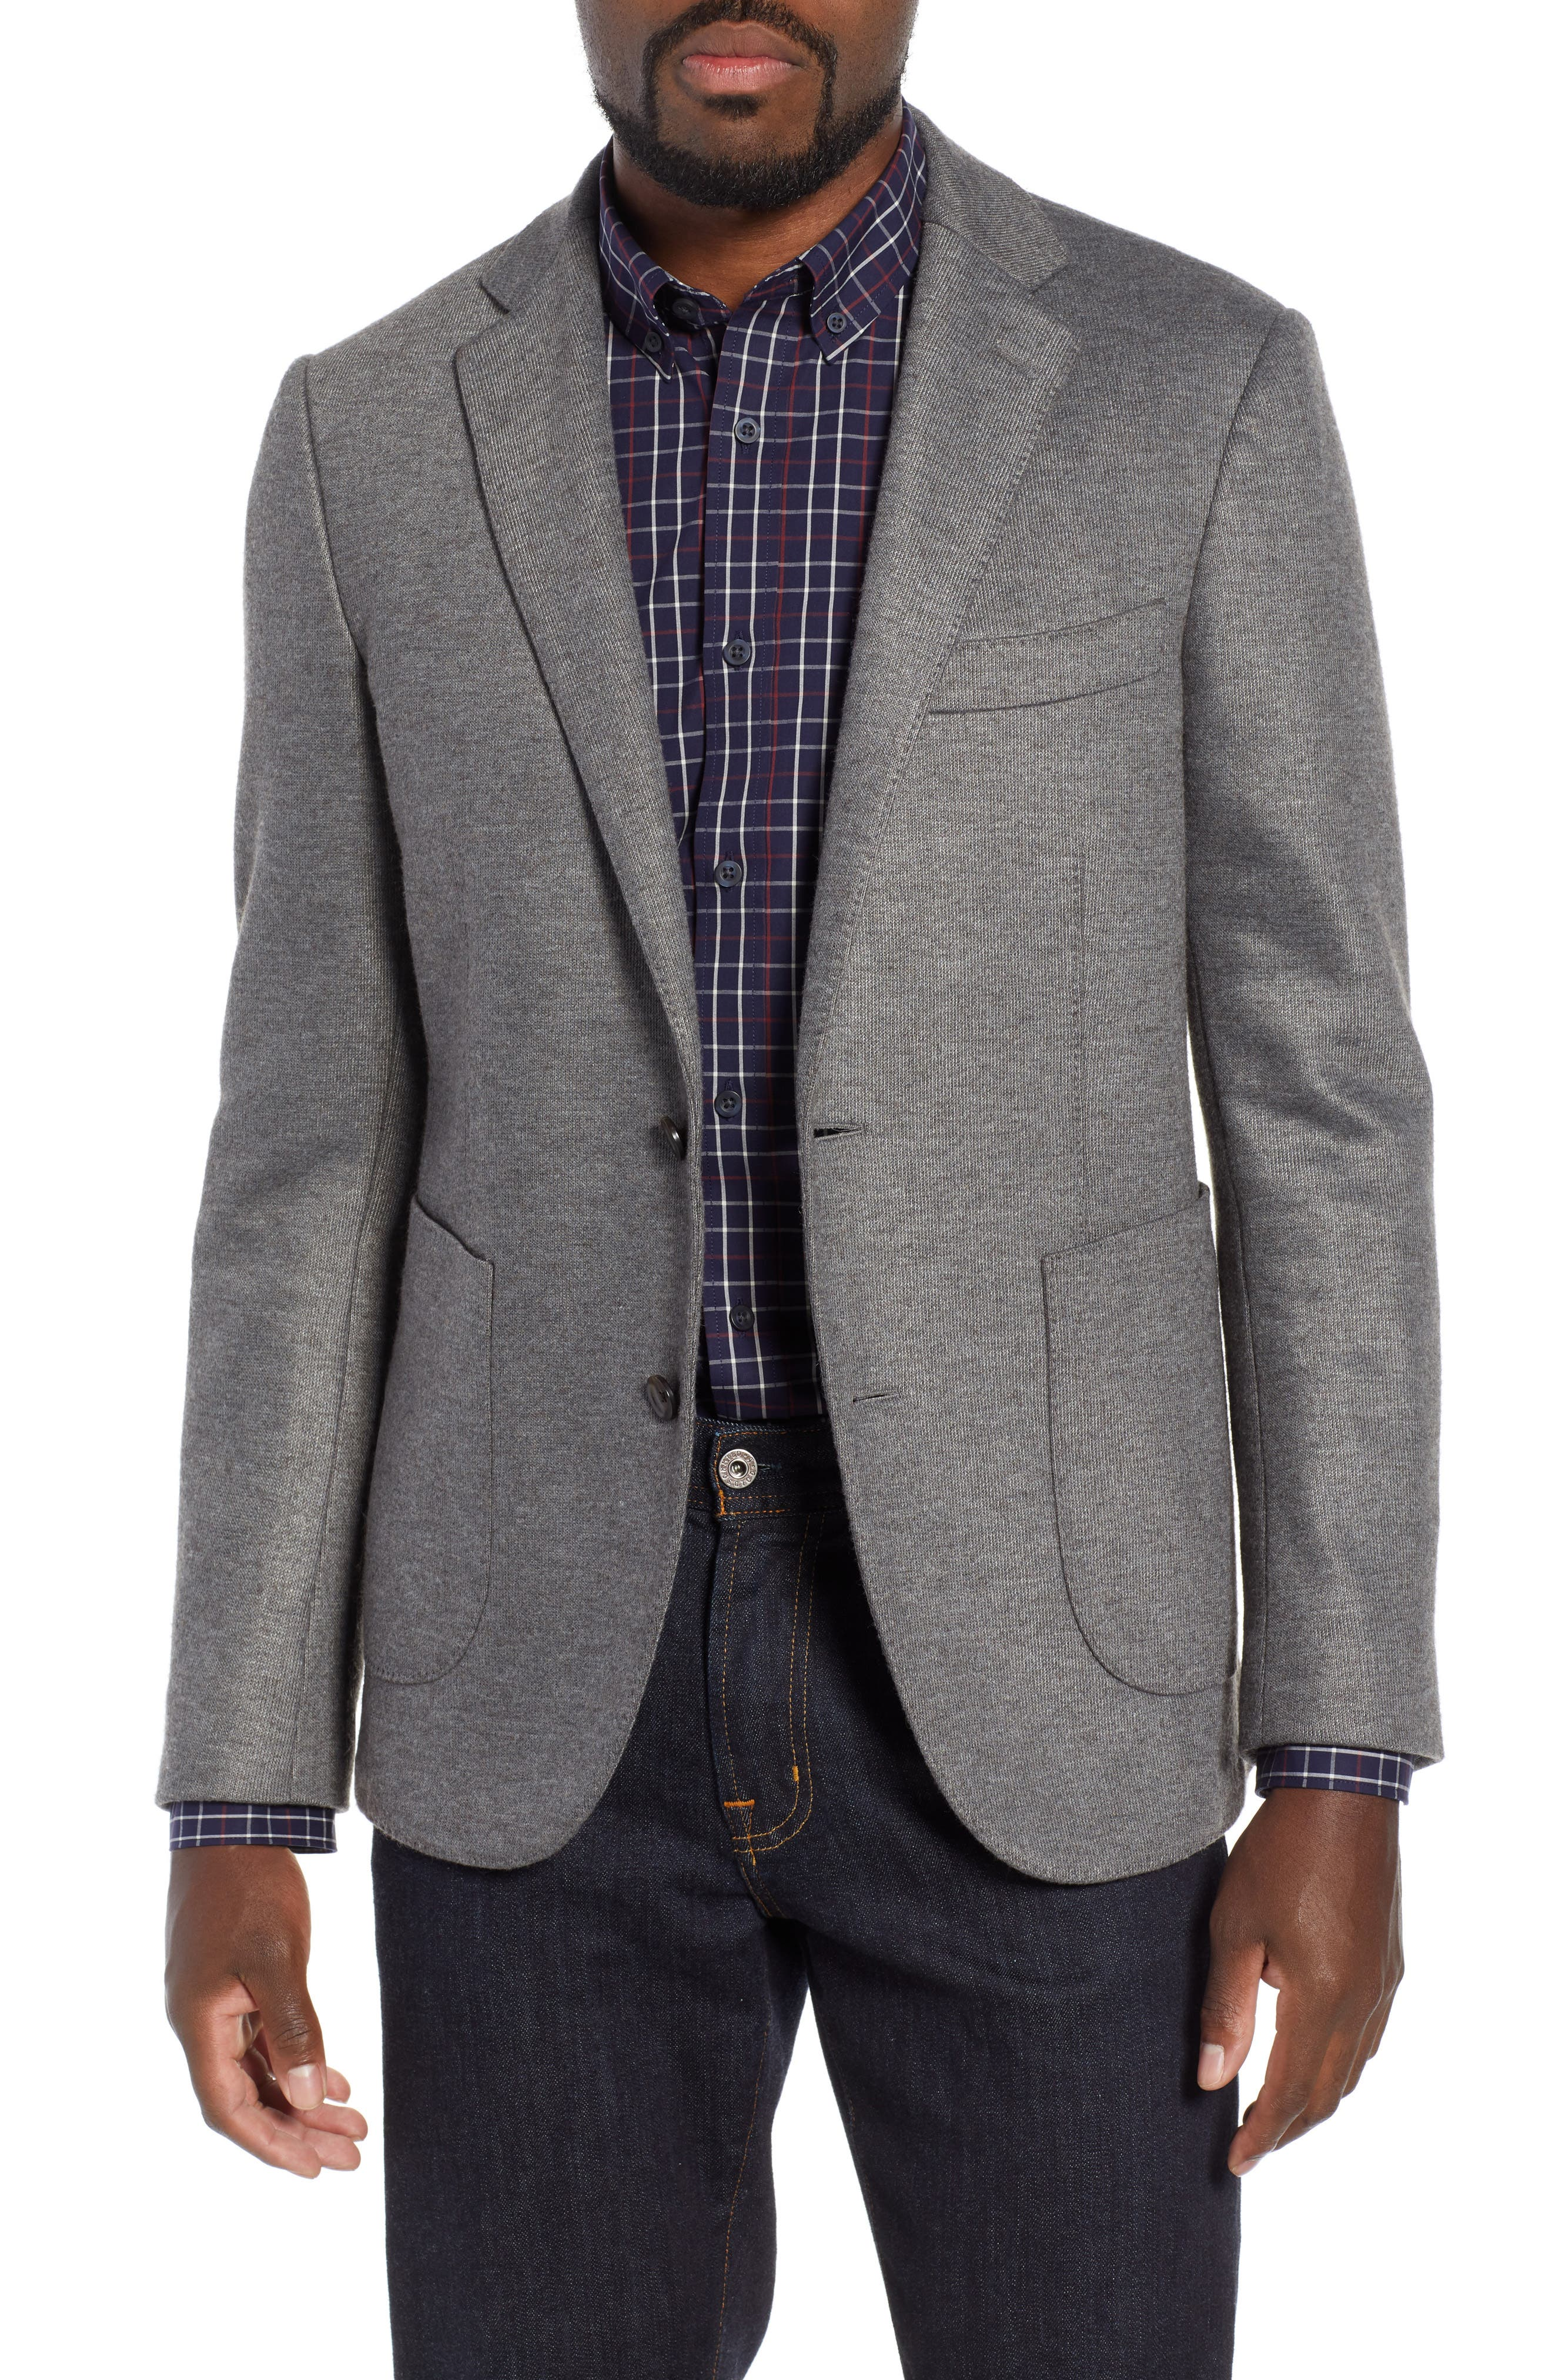 RODD & GUNN, Brooklynn Sport Coat, Main thumbnail 1, color, ASH